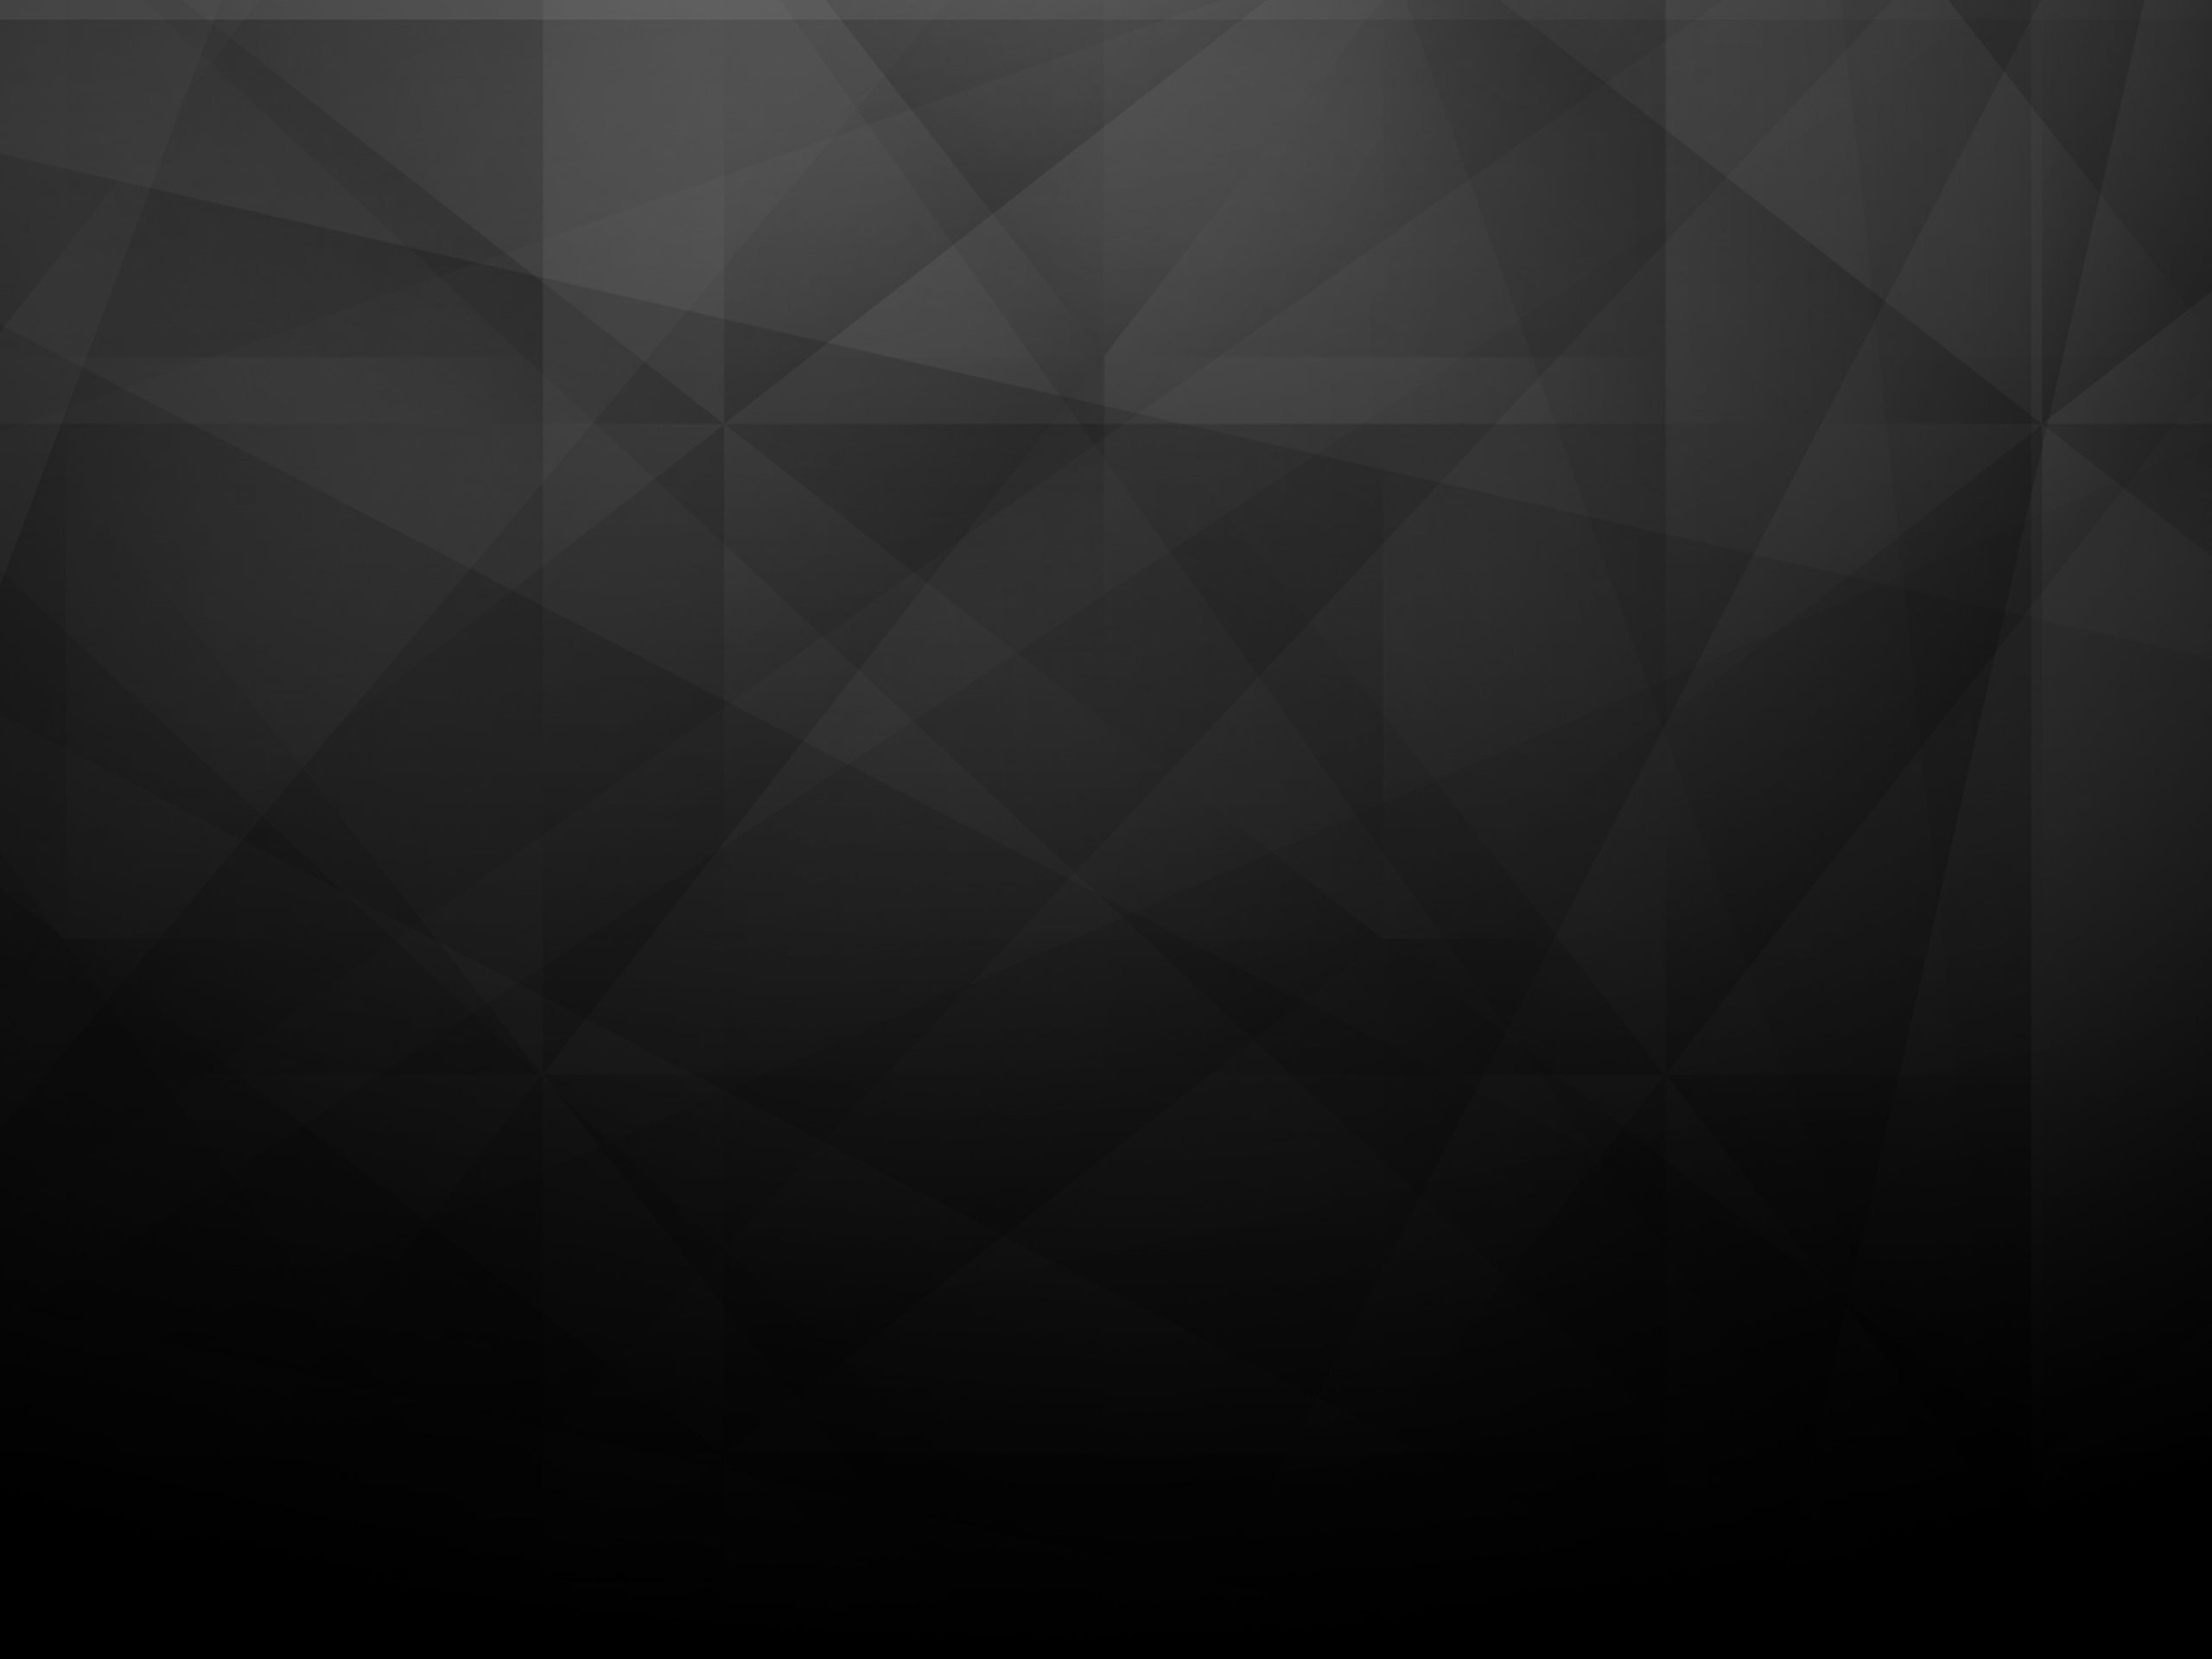 2560x1920 black wallpaper 1 black wallpaper 2 black wallpaper 3 ...